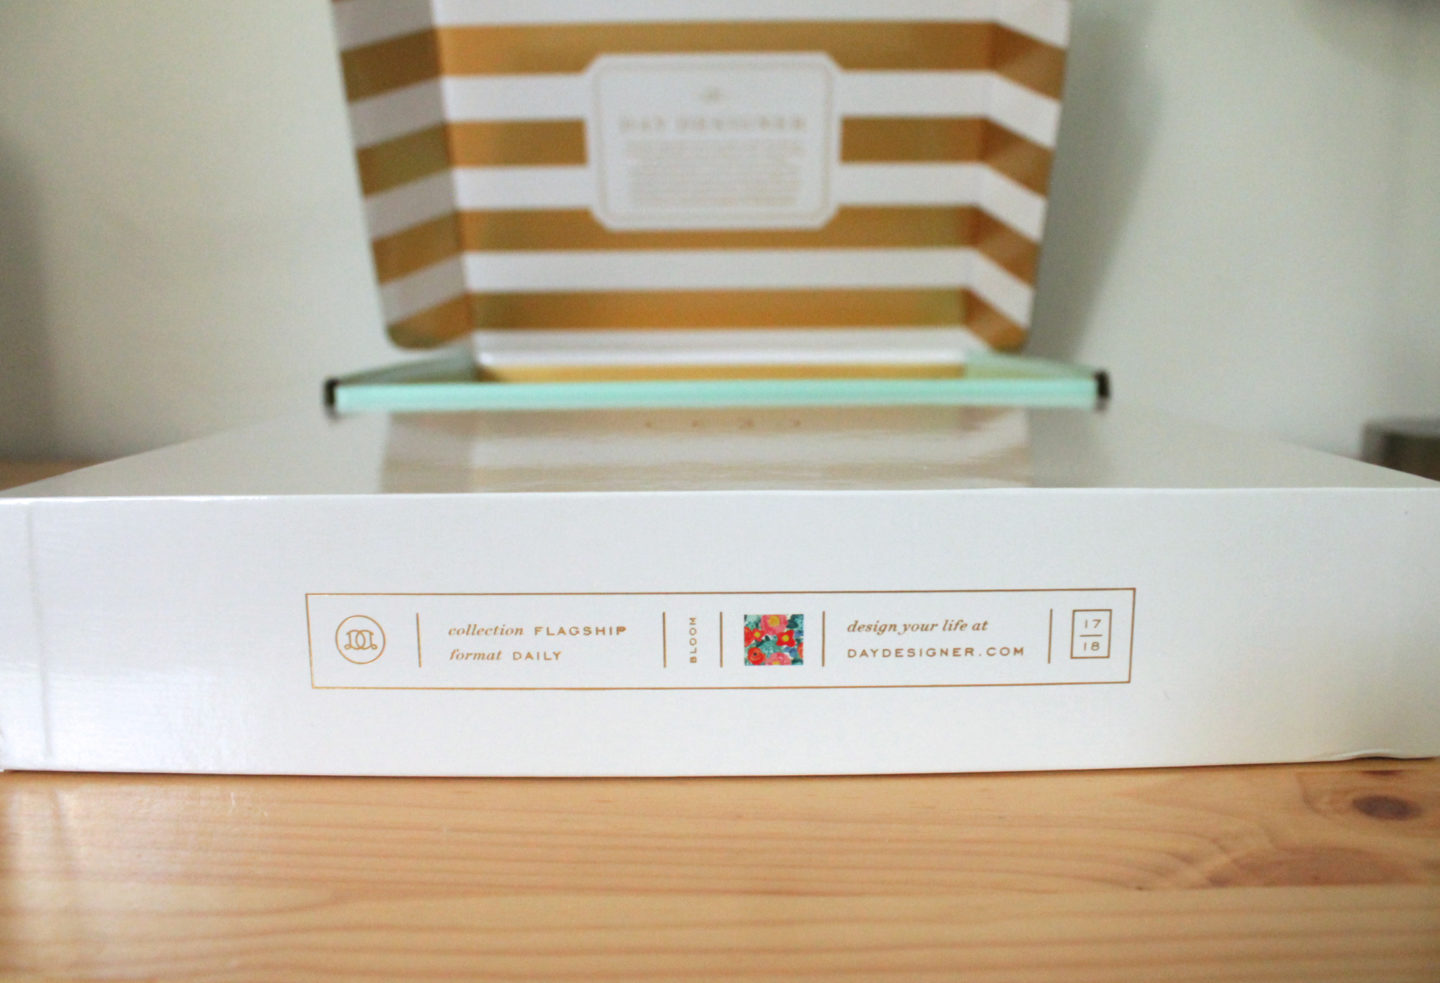 Day Designer Box and Planner Packaging